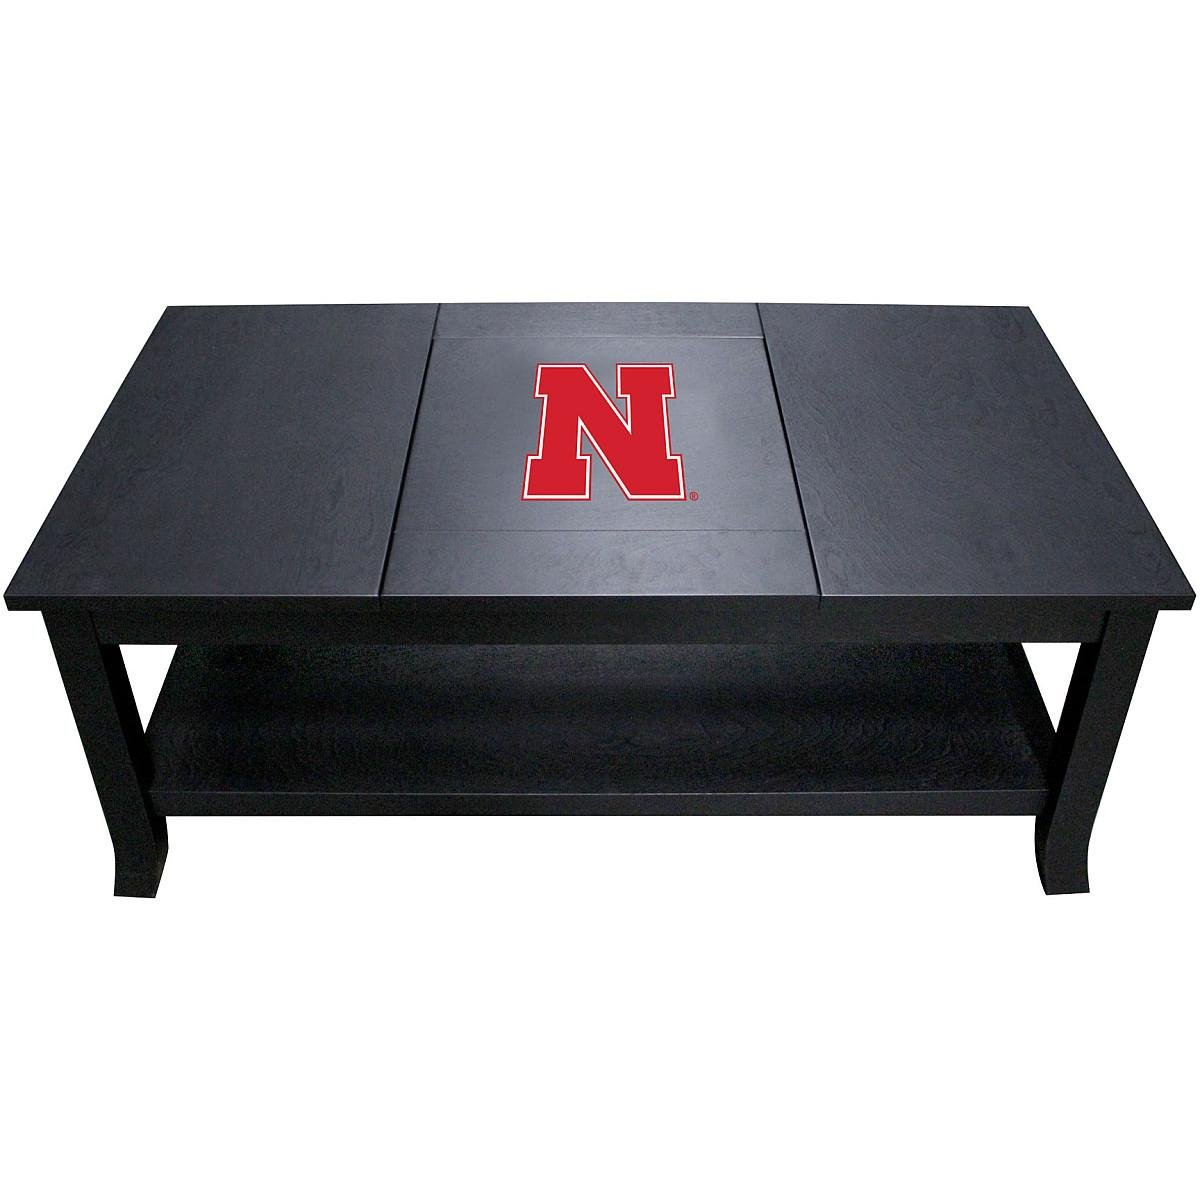 Imperial Officially Licensed NCAA Furniture: Hardwood Coffee Table, Nebraska Cornhuskers by Imperial